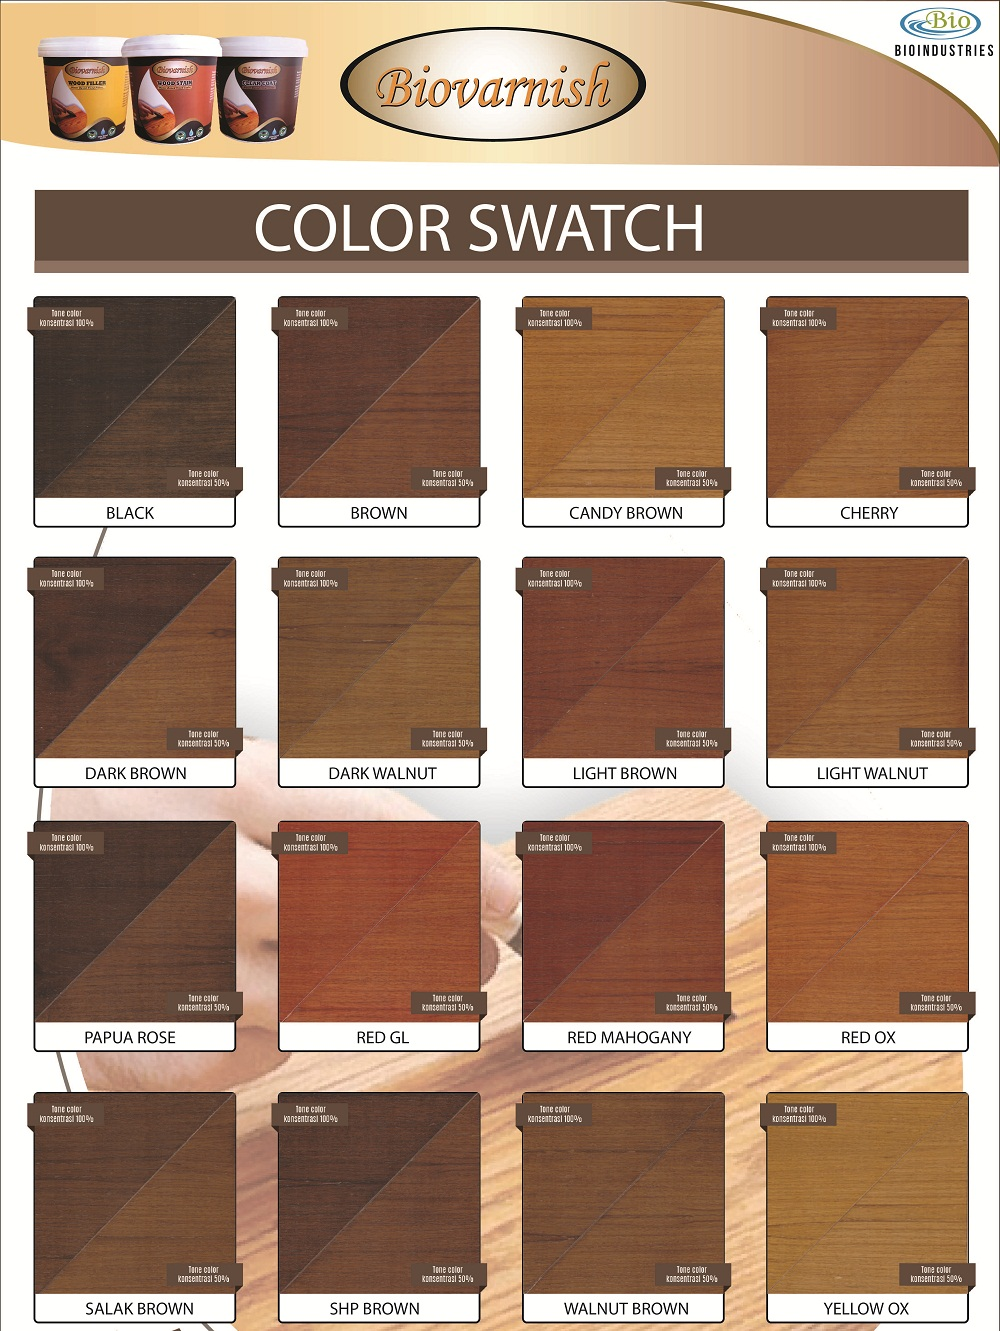 Katalog Warna Biovarnish Wood Stain Bioindustries